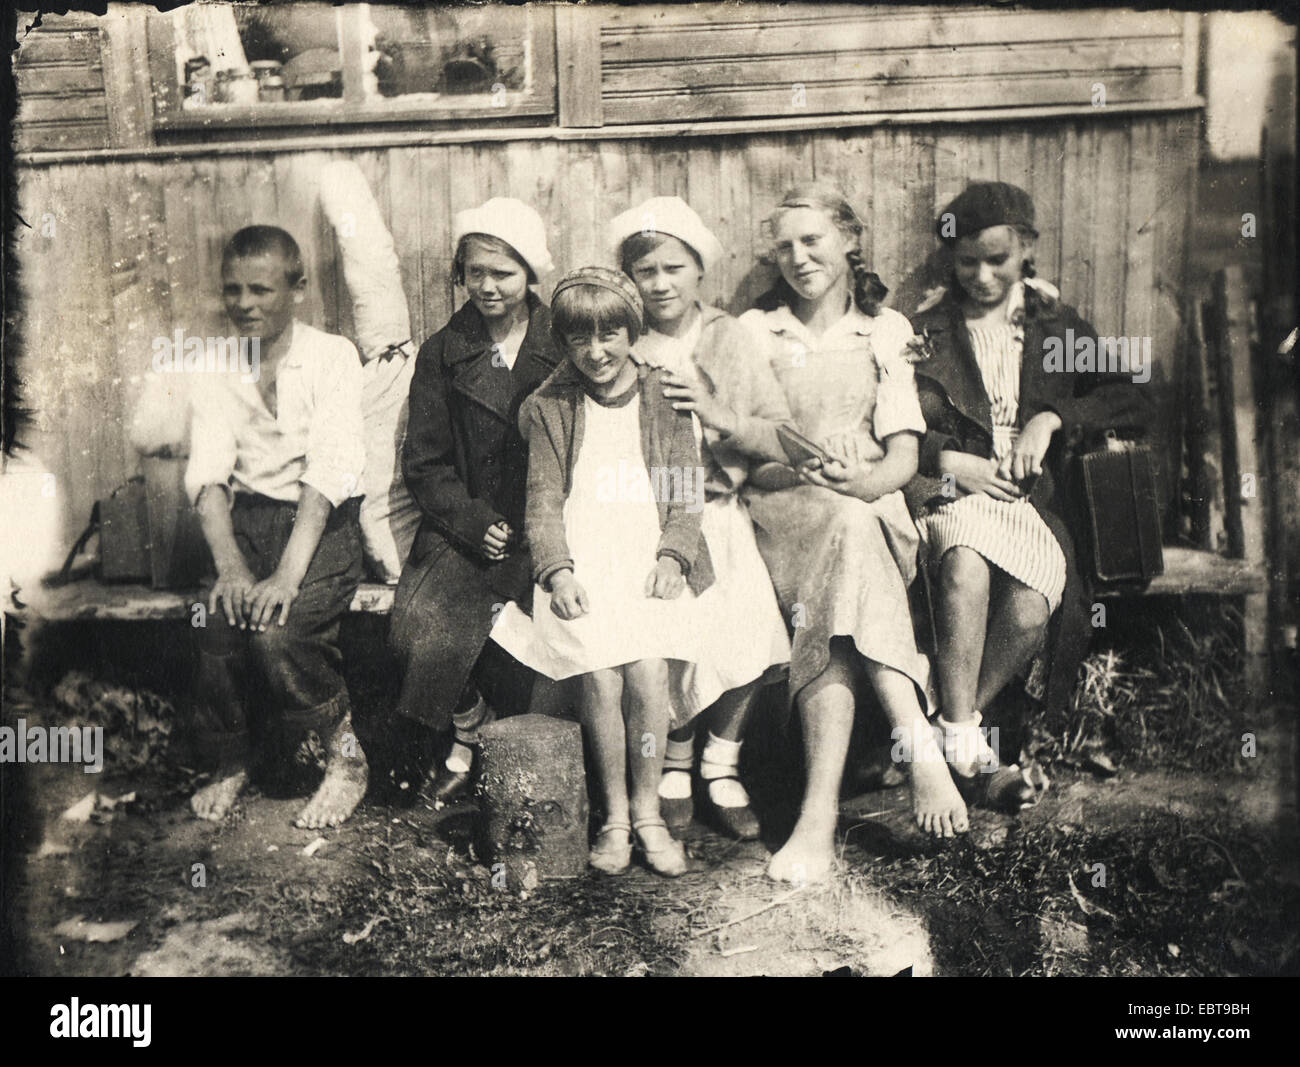 Children on summer vacation in the countryside, circa 1940 - Stock Image